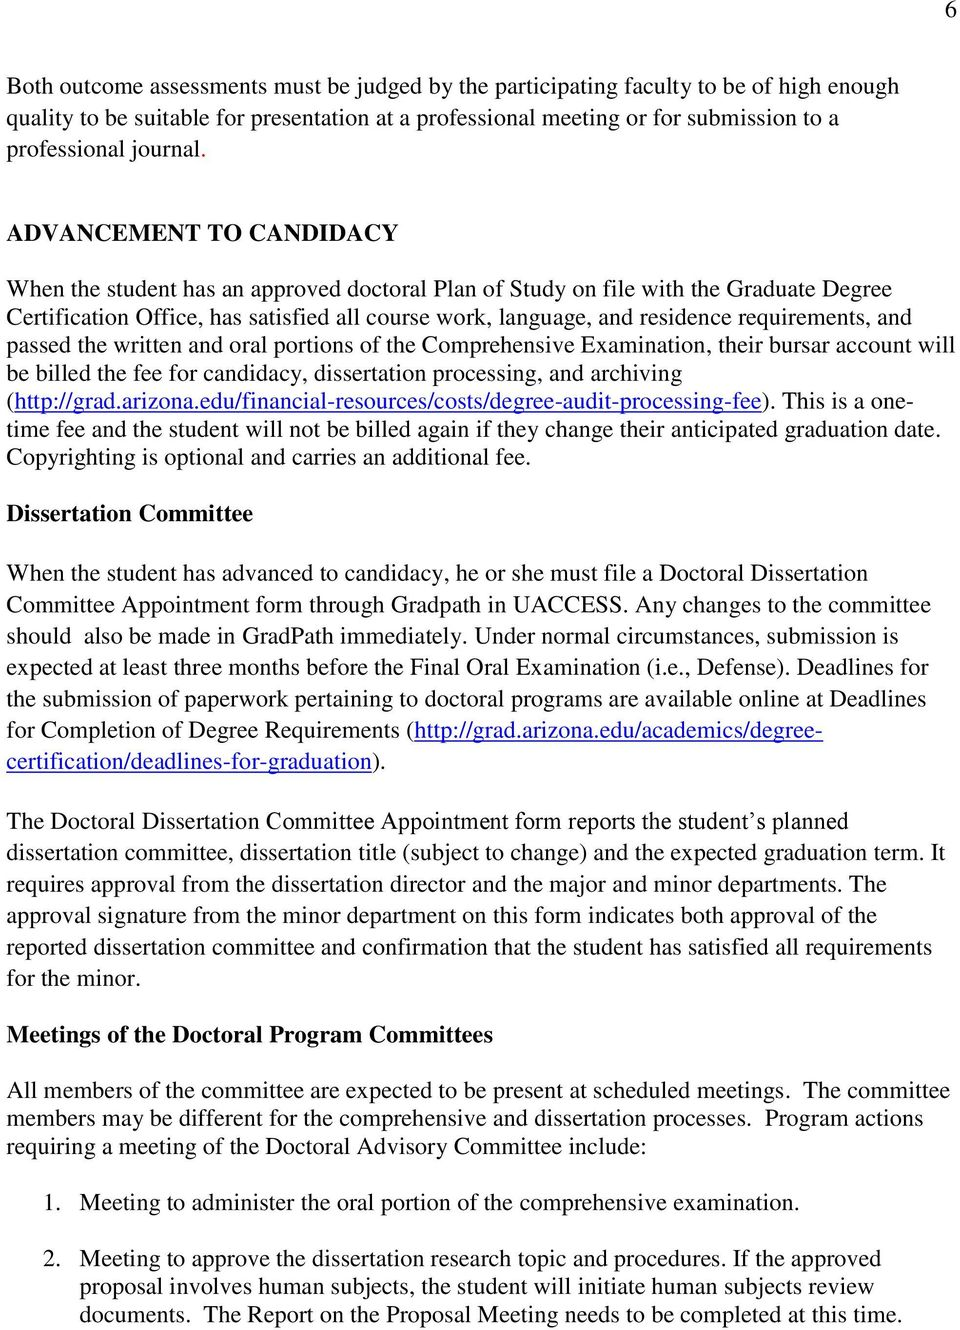 ADVANCEMENT TO CANDIDACY When the student has an approved doctoral Plan of Study on file with the Graduate Degree Certification Office, has satisfied all course work, language, and residence